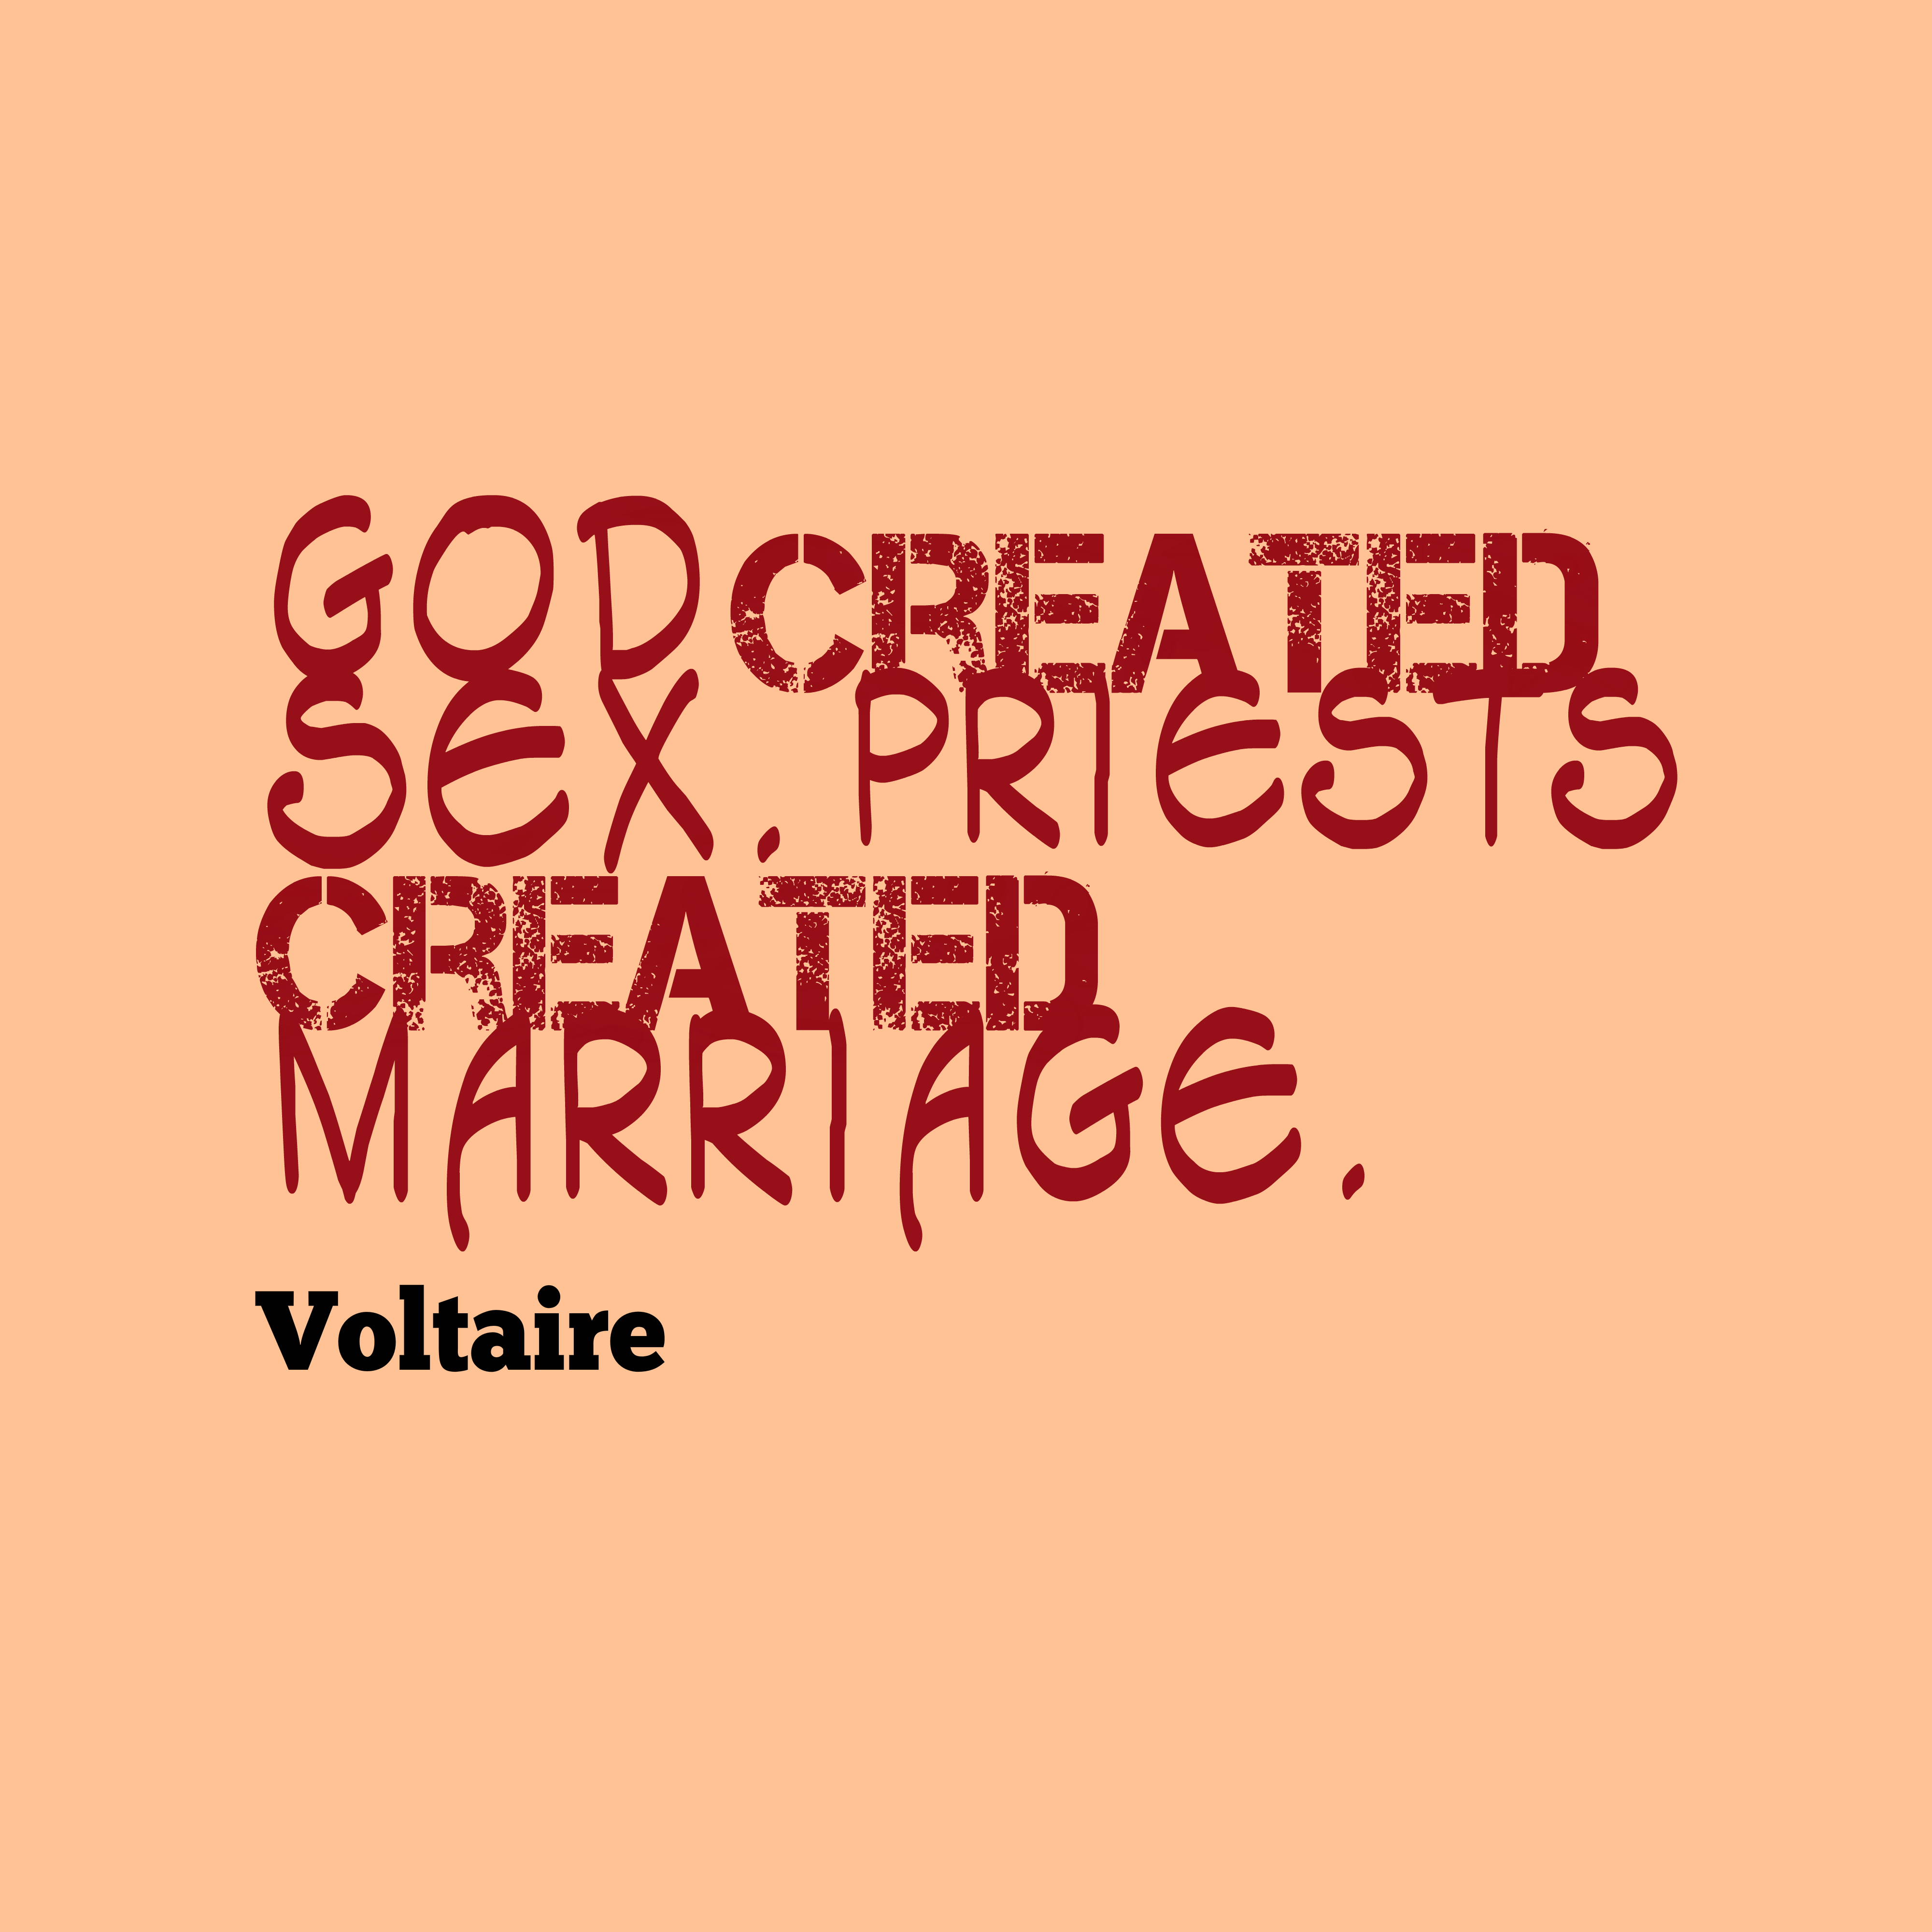 Download Download Sex Good picture god created sex. | quotescover